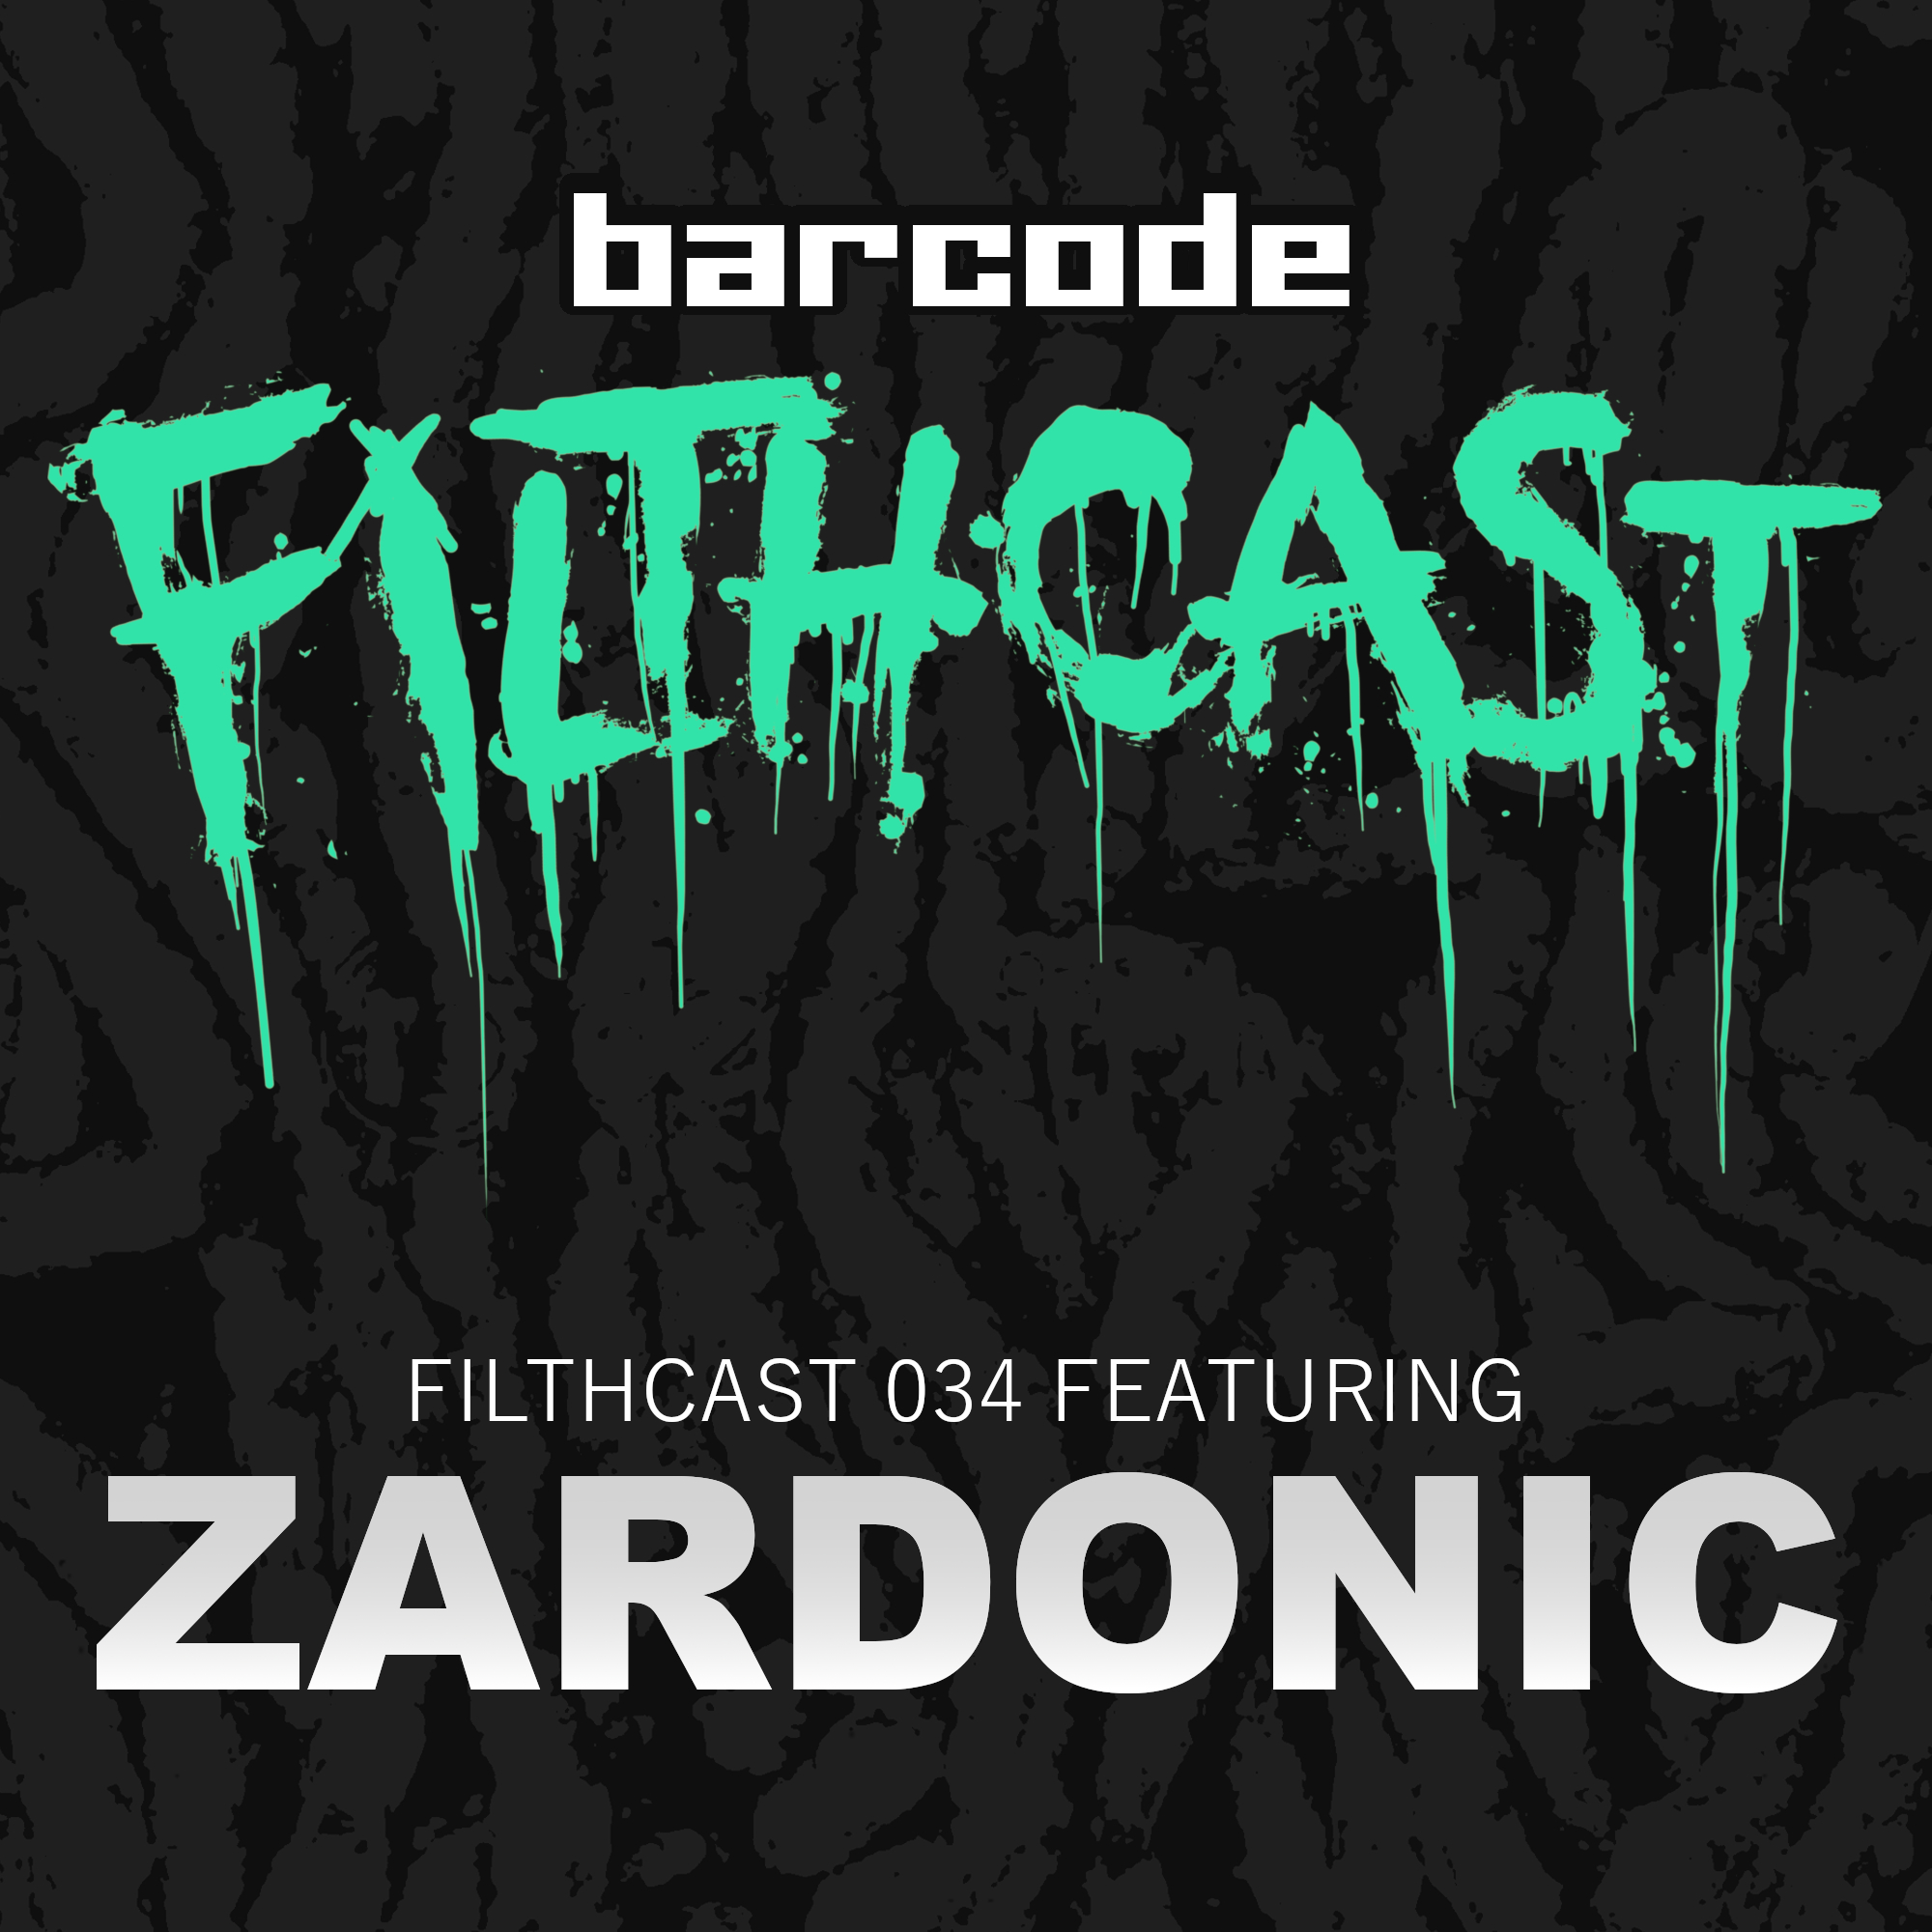 All the way from Latin America, Zardonic is the heaviest drum & bass export to come out of Venezuela. His well received sound blends elements of metal, dubstep, and dark ambient and has led to a number of collaborations and releases with artists such as Counterstrike, Dieselboy, Cooh, and Messinian.